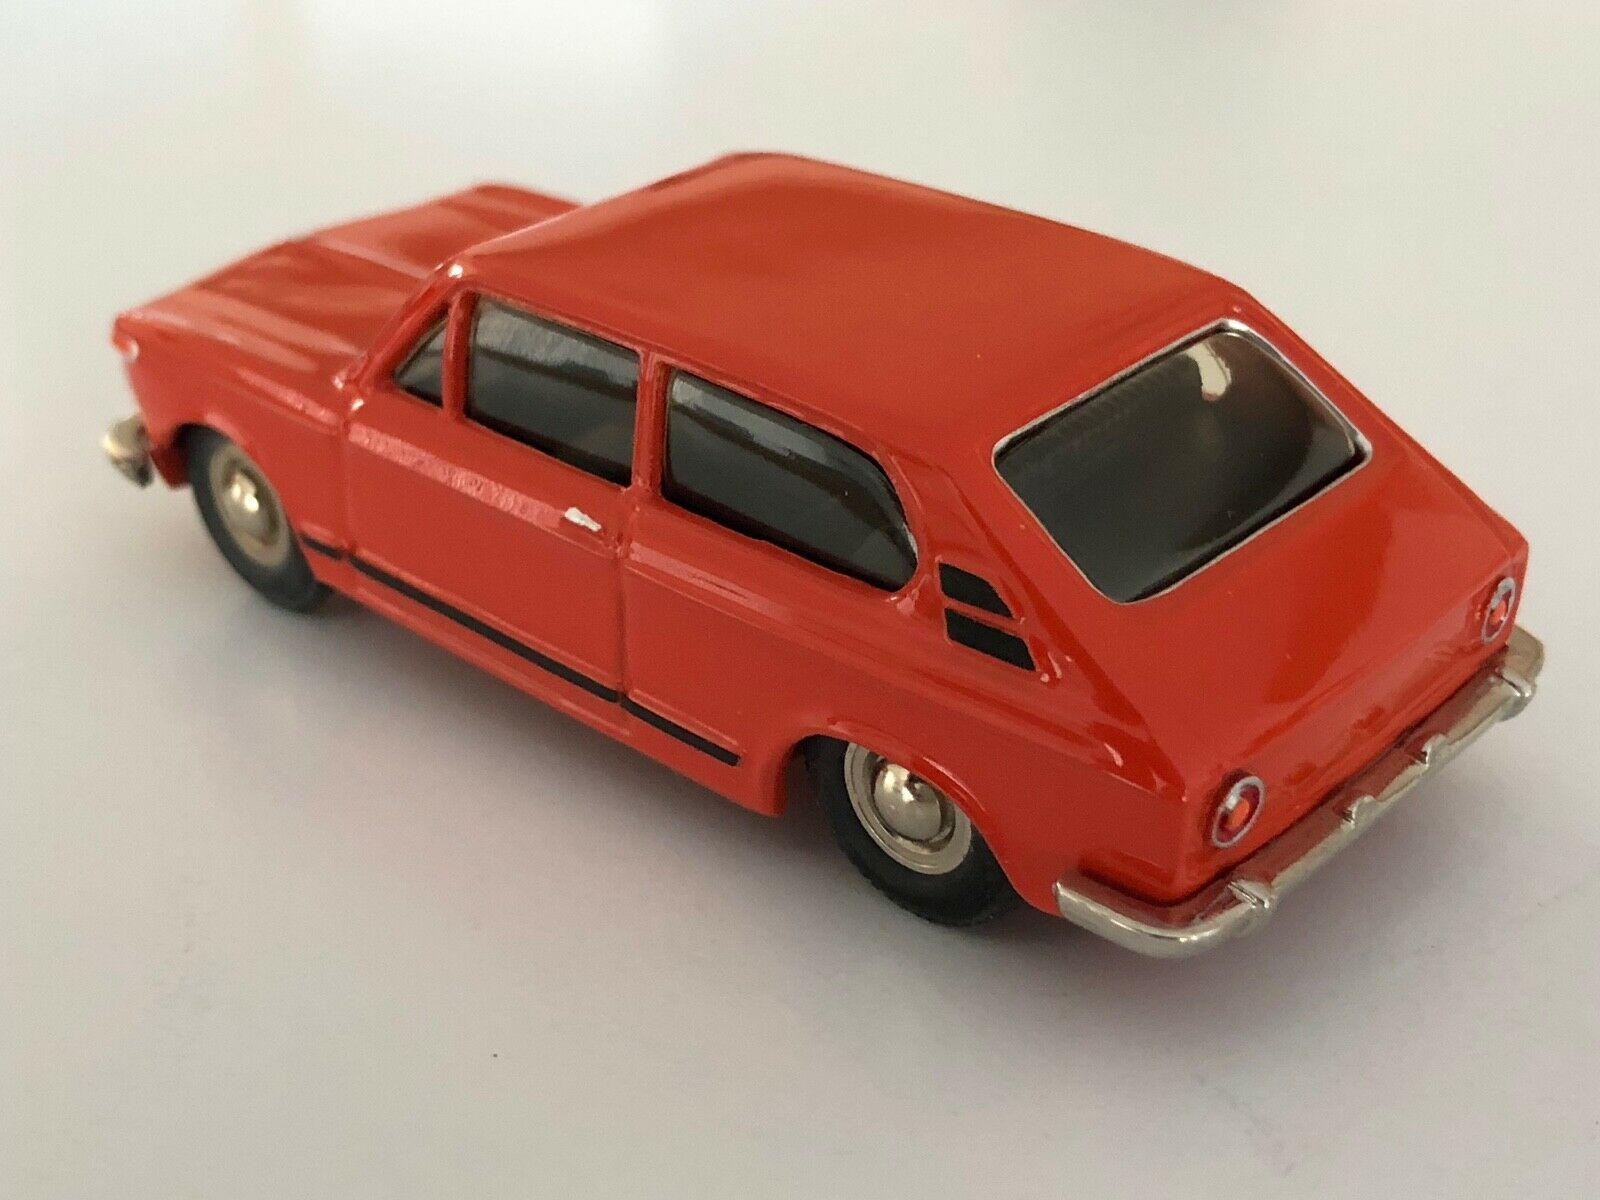 Danhausen Modelauto Replica BMW 2000 Touring handbuilt in 1 43 scale No. 1131